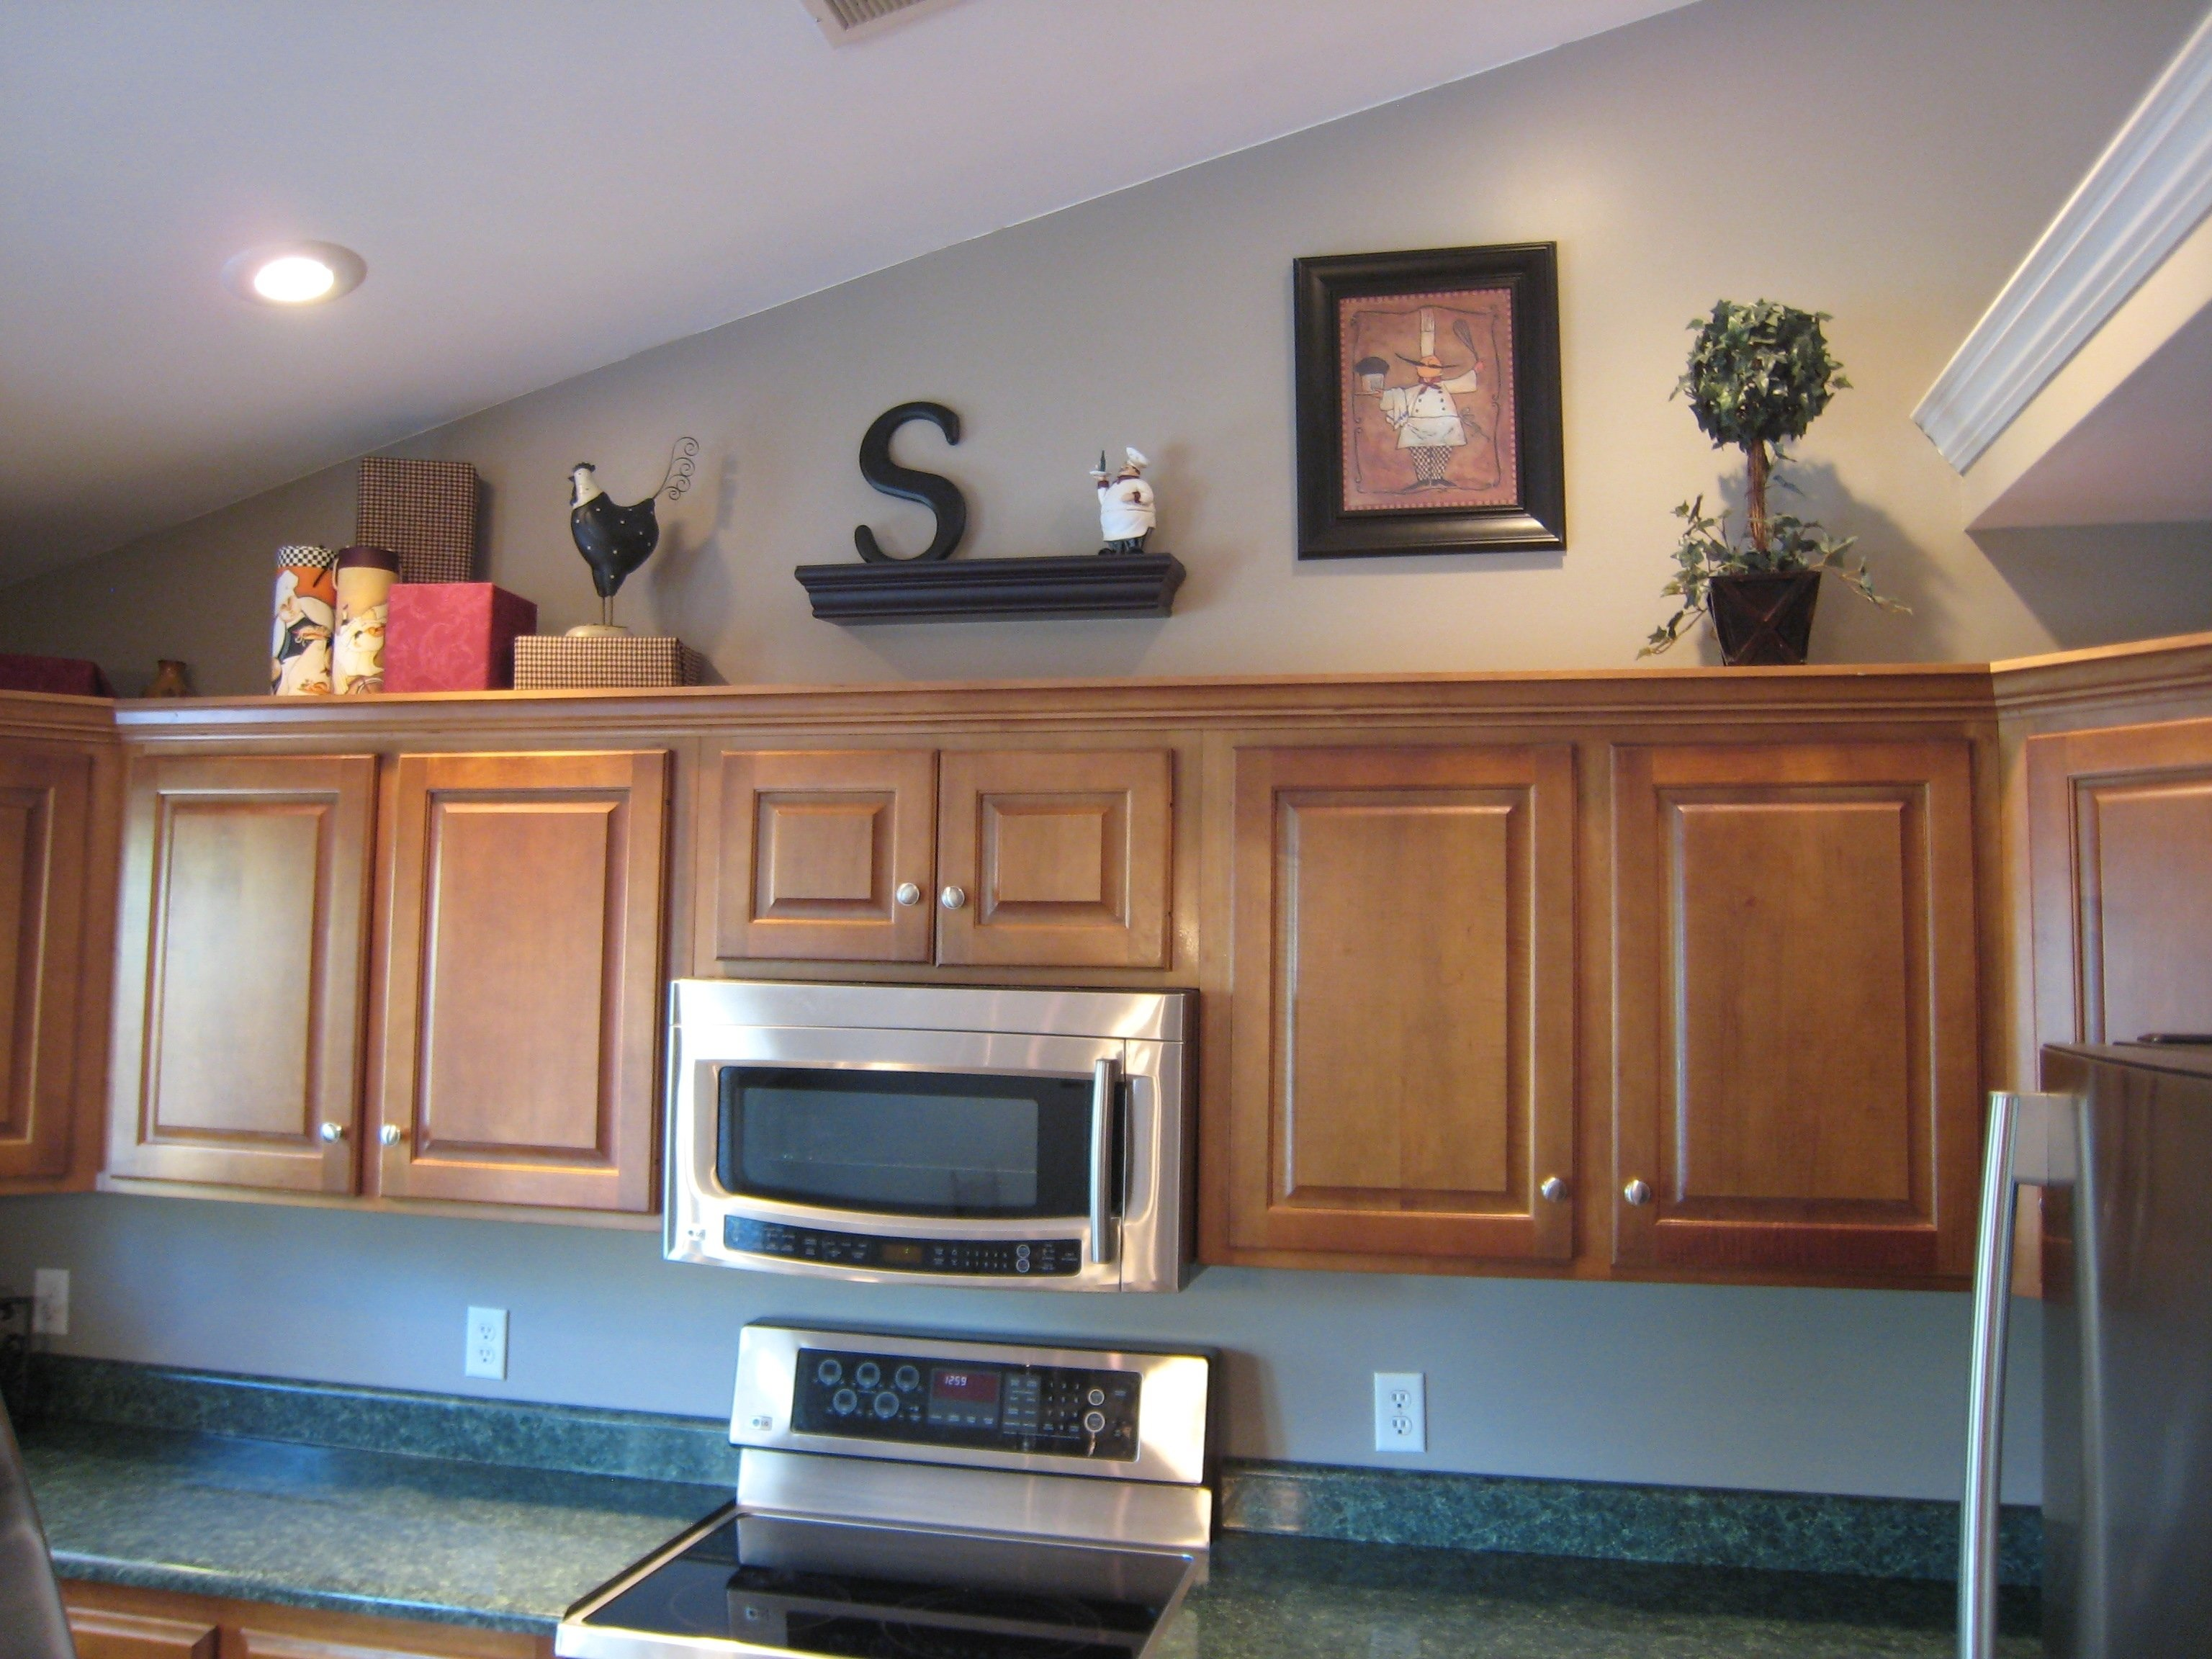 10 Lovely Decorating Ideas For Above Kitchen Cabinets home decor above cabinet decorating ideas bronze kitchen wall 2021